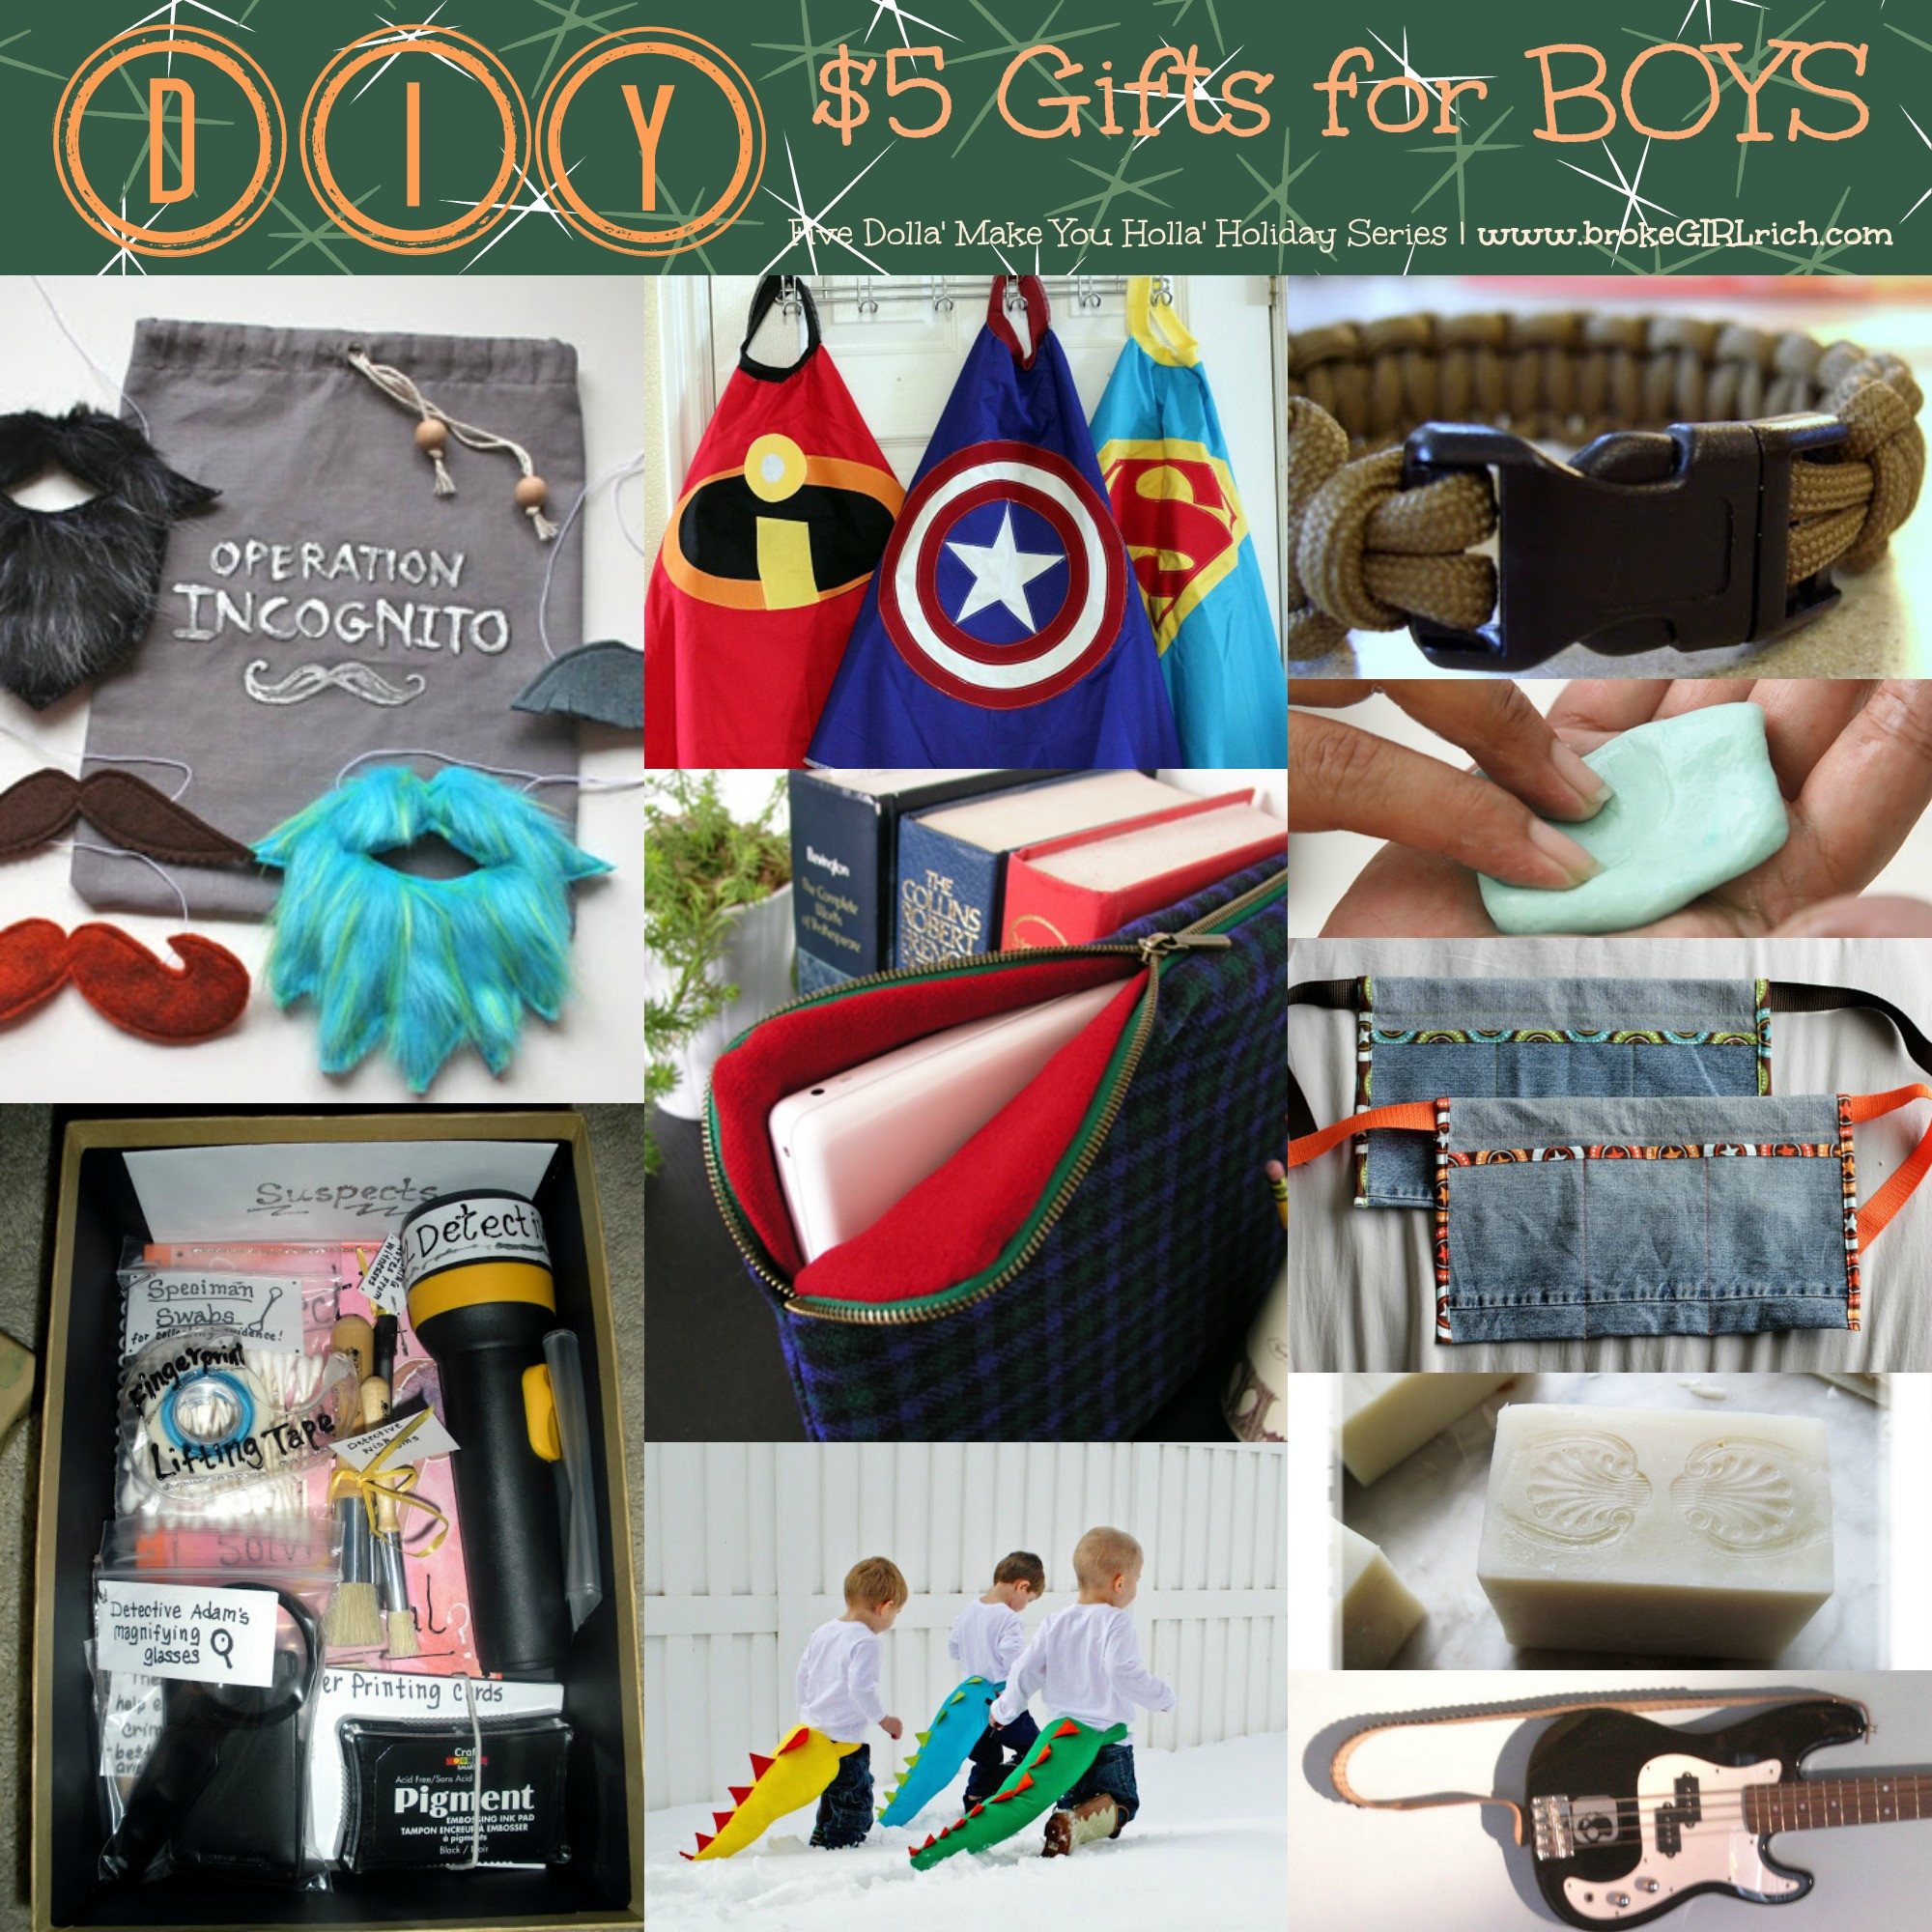 DIY Christmas Gifts For Boy  Five Dolla Make You Holla Holiday Series Brothers